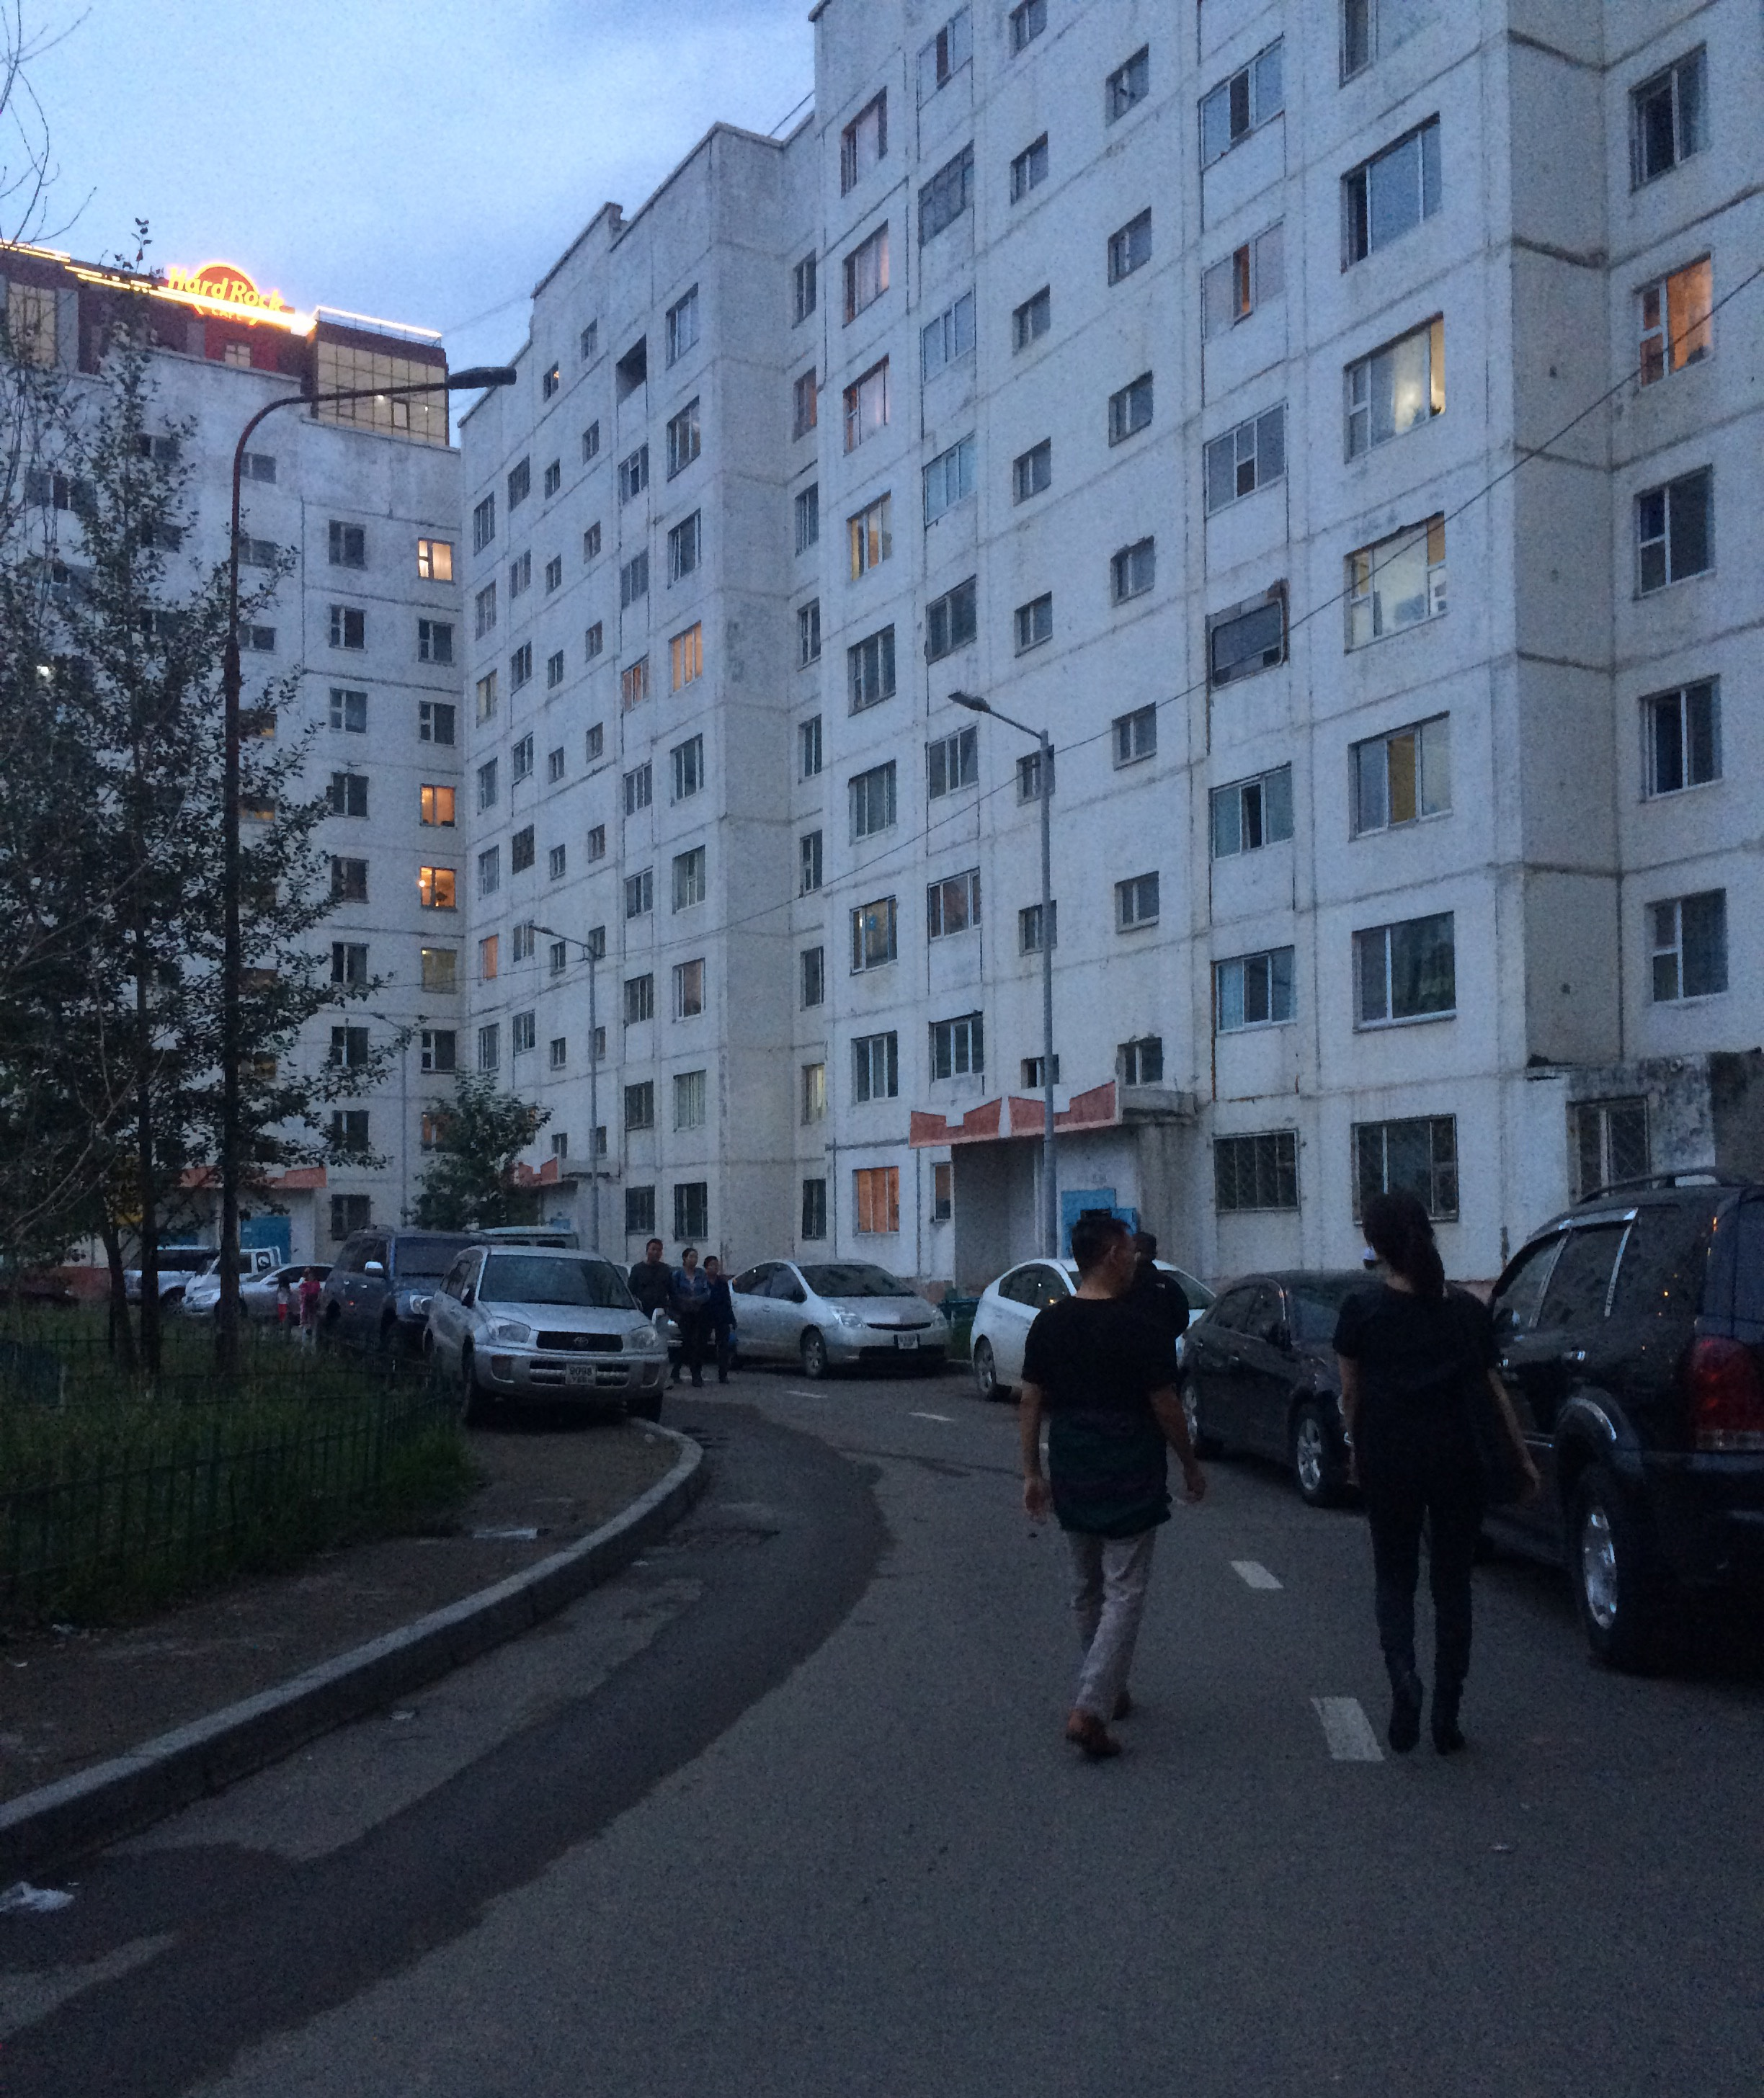 Image shows the street view of apartment blocks in the city of Ulaanbaatar